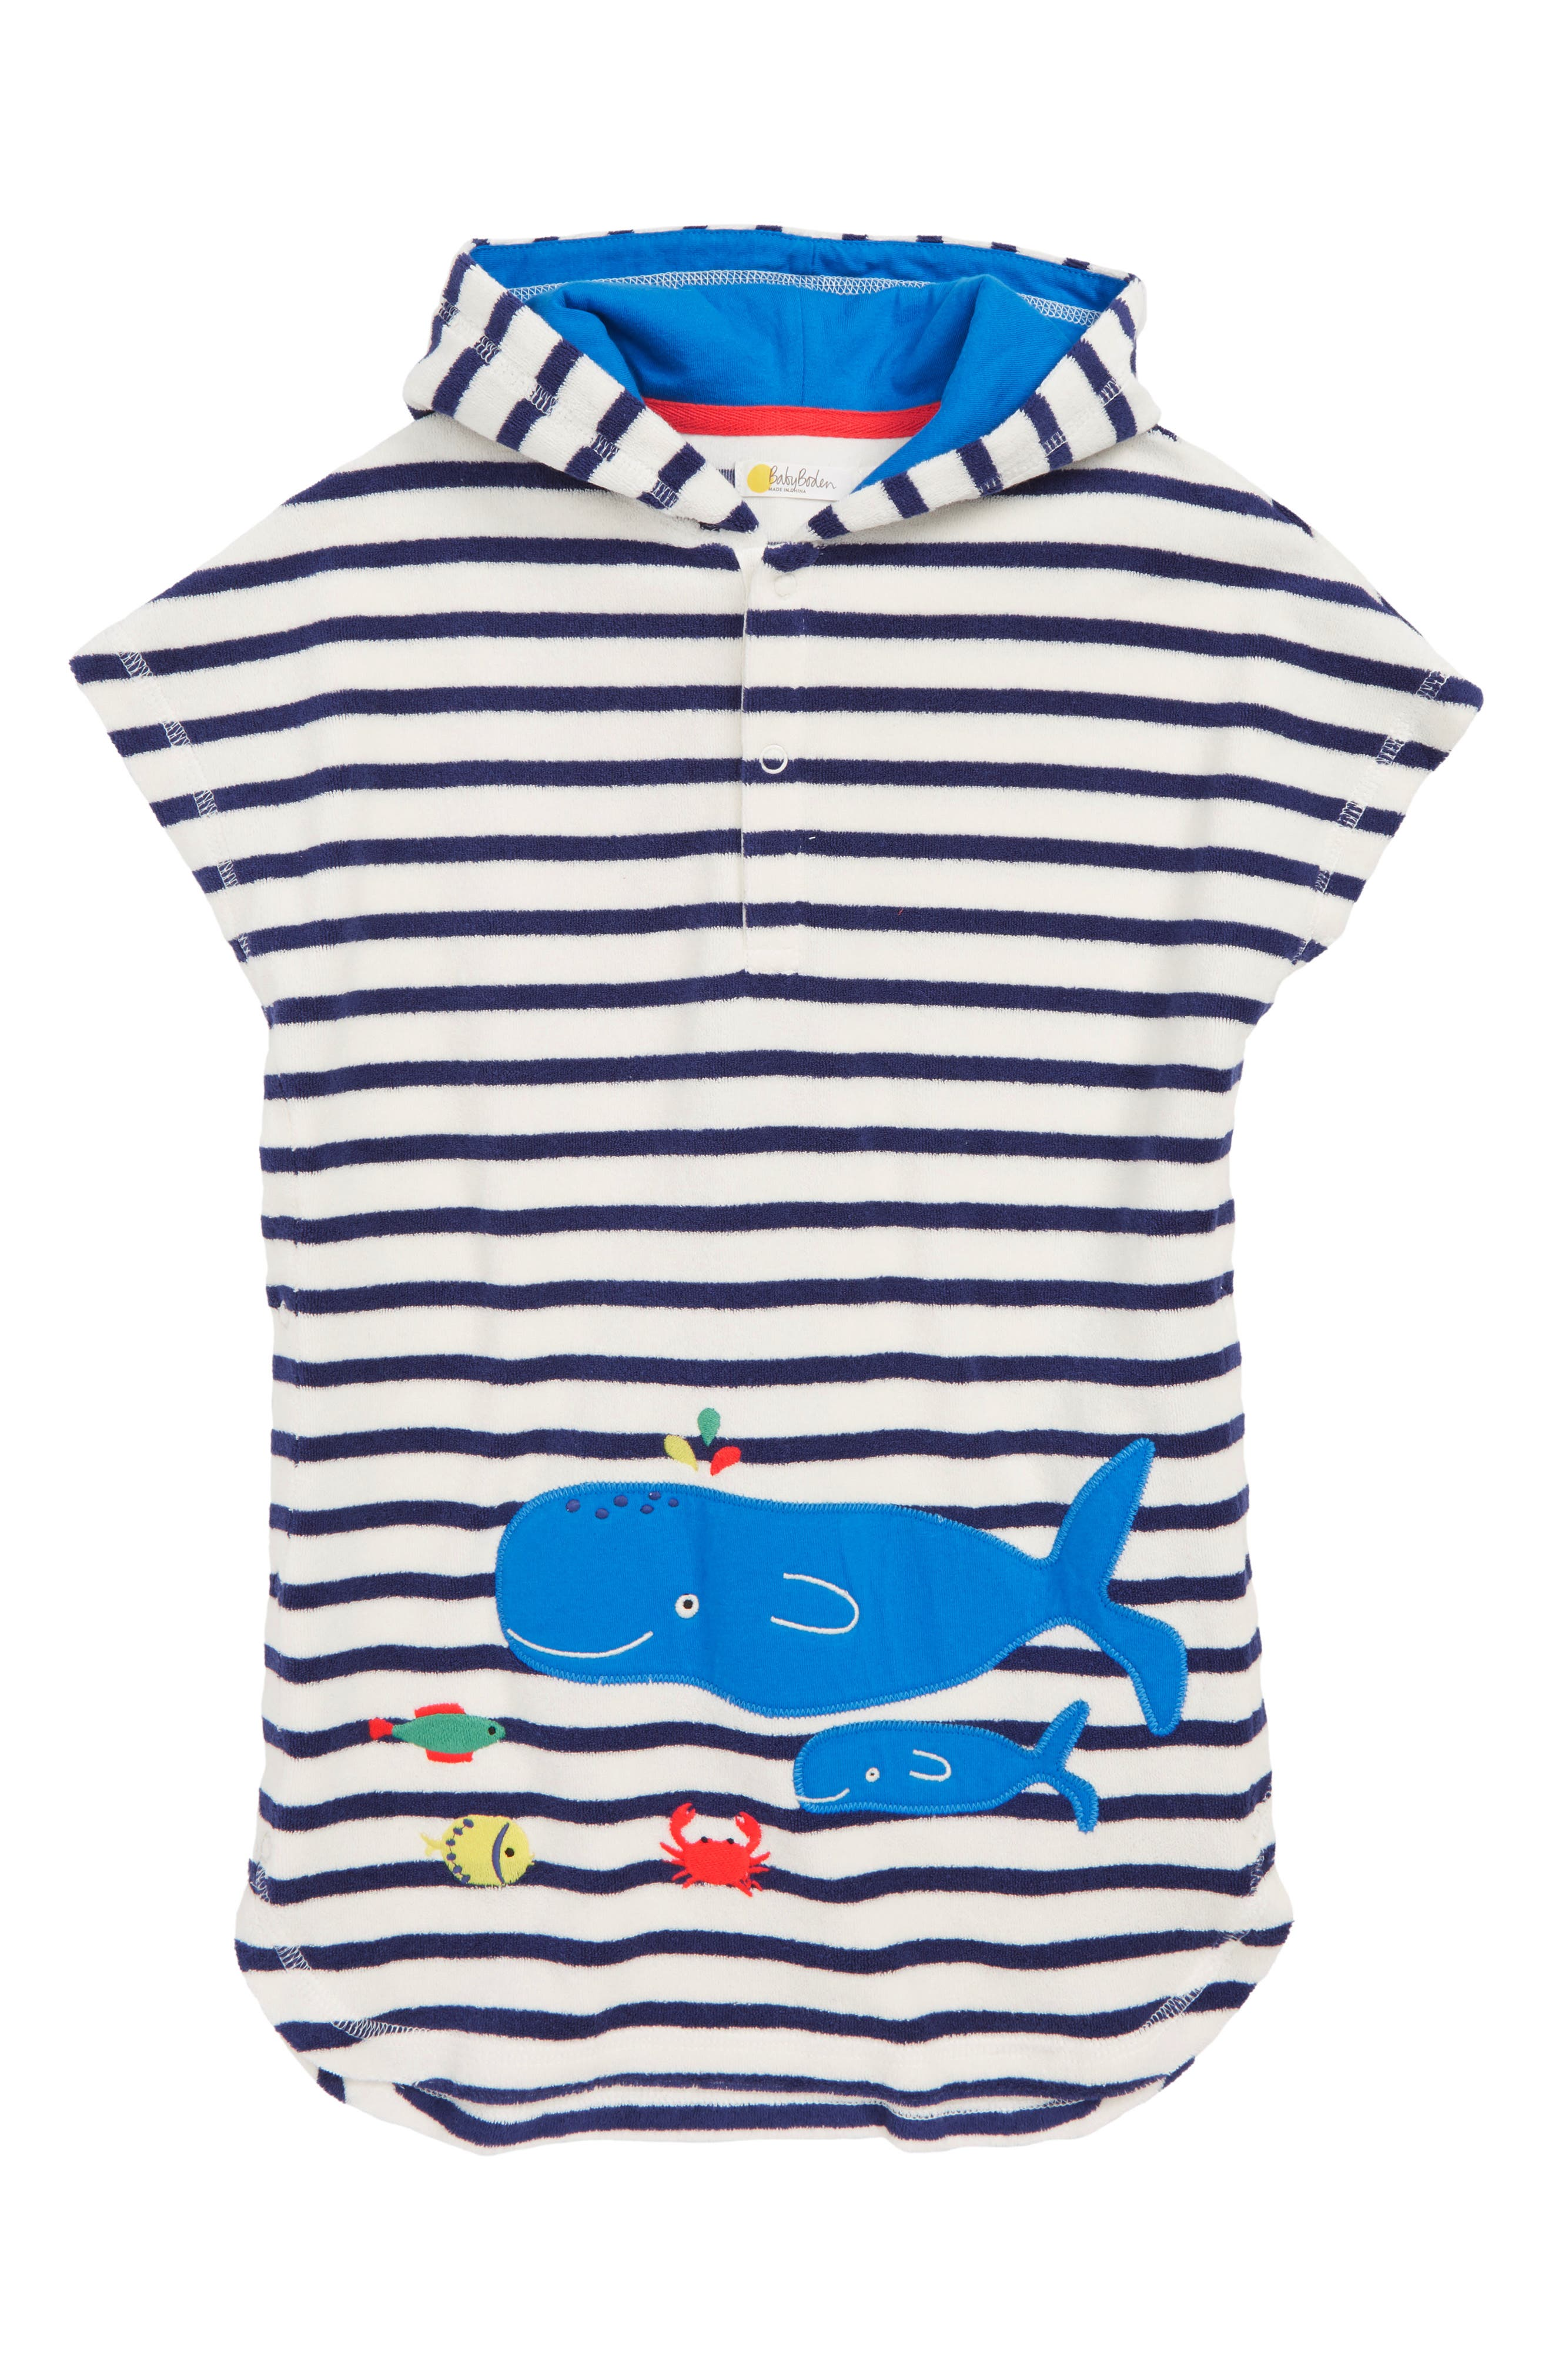 Toddler Boys Mini Boden Whale Applique Hooded CoverUp